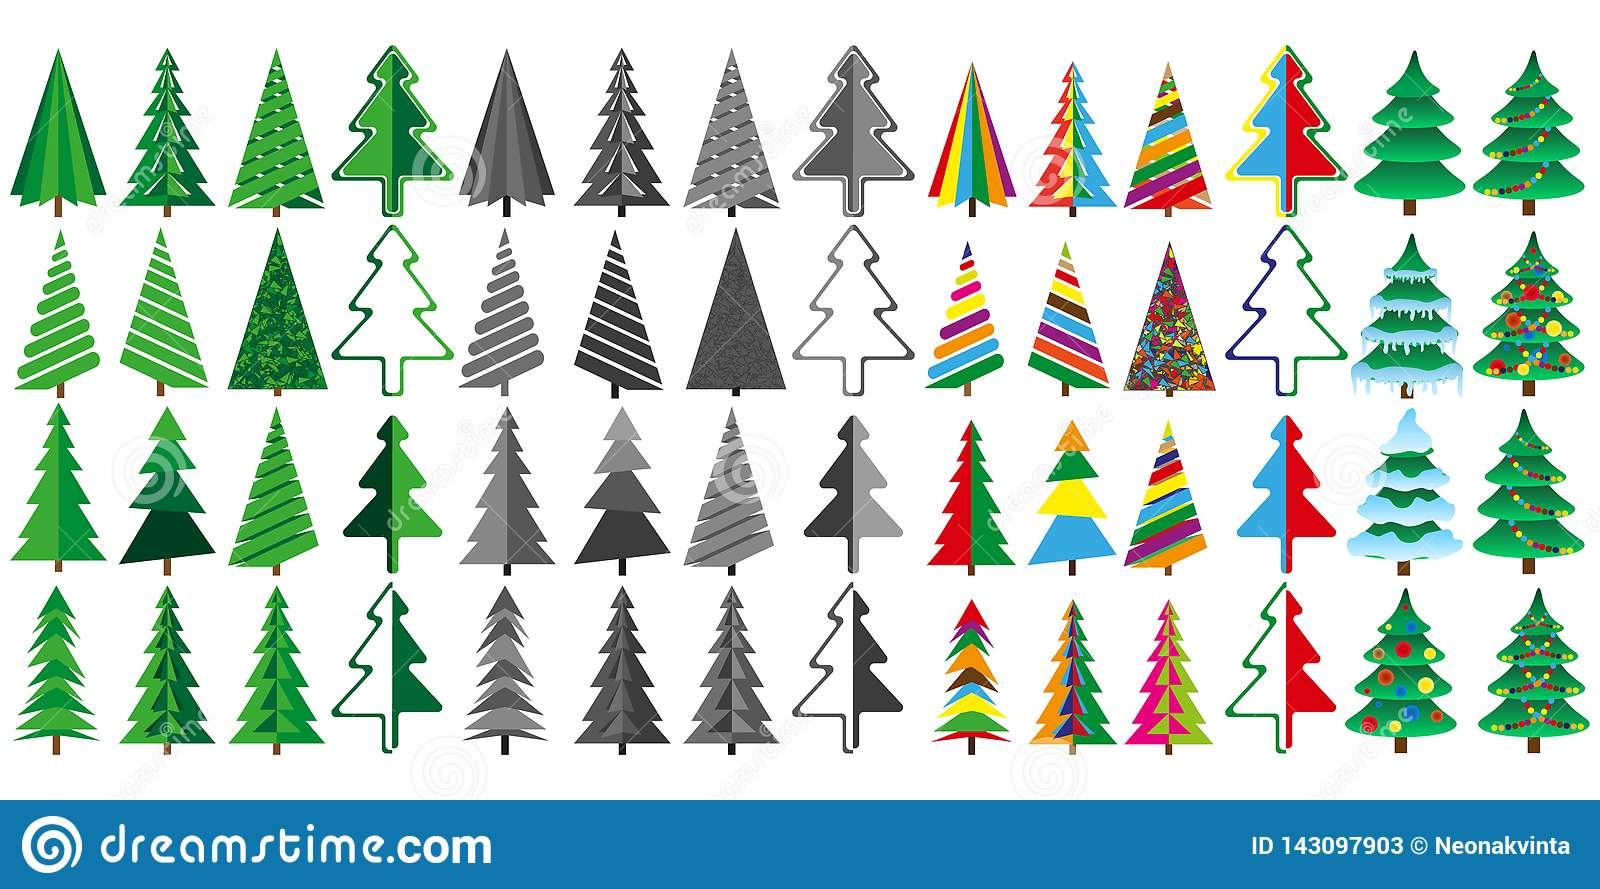 Large Set Of Christmas Trees In Color And Gray. Stock Vector